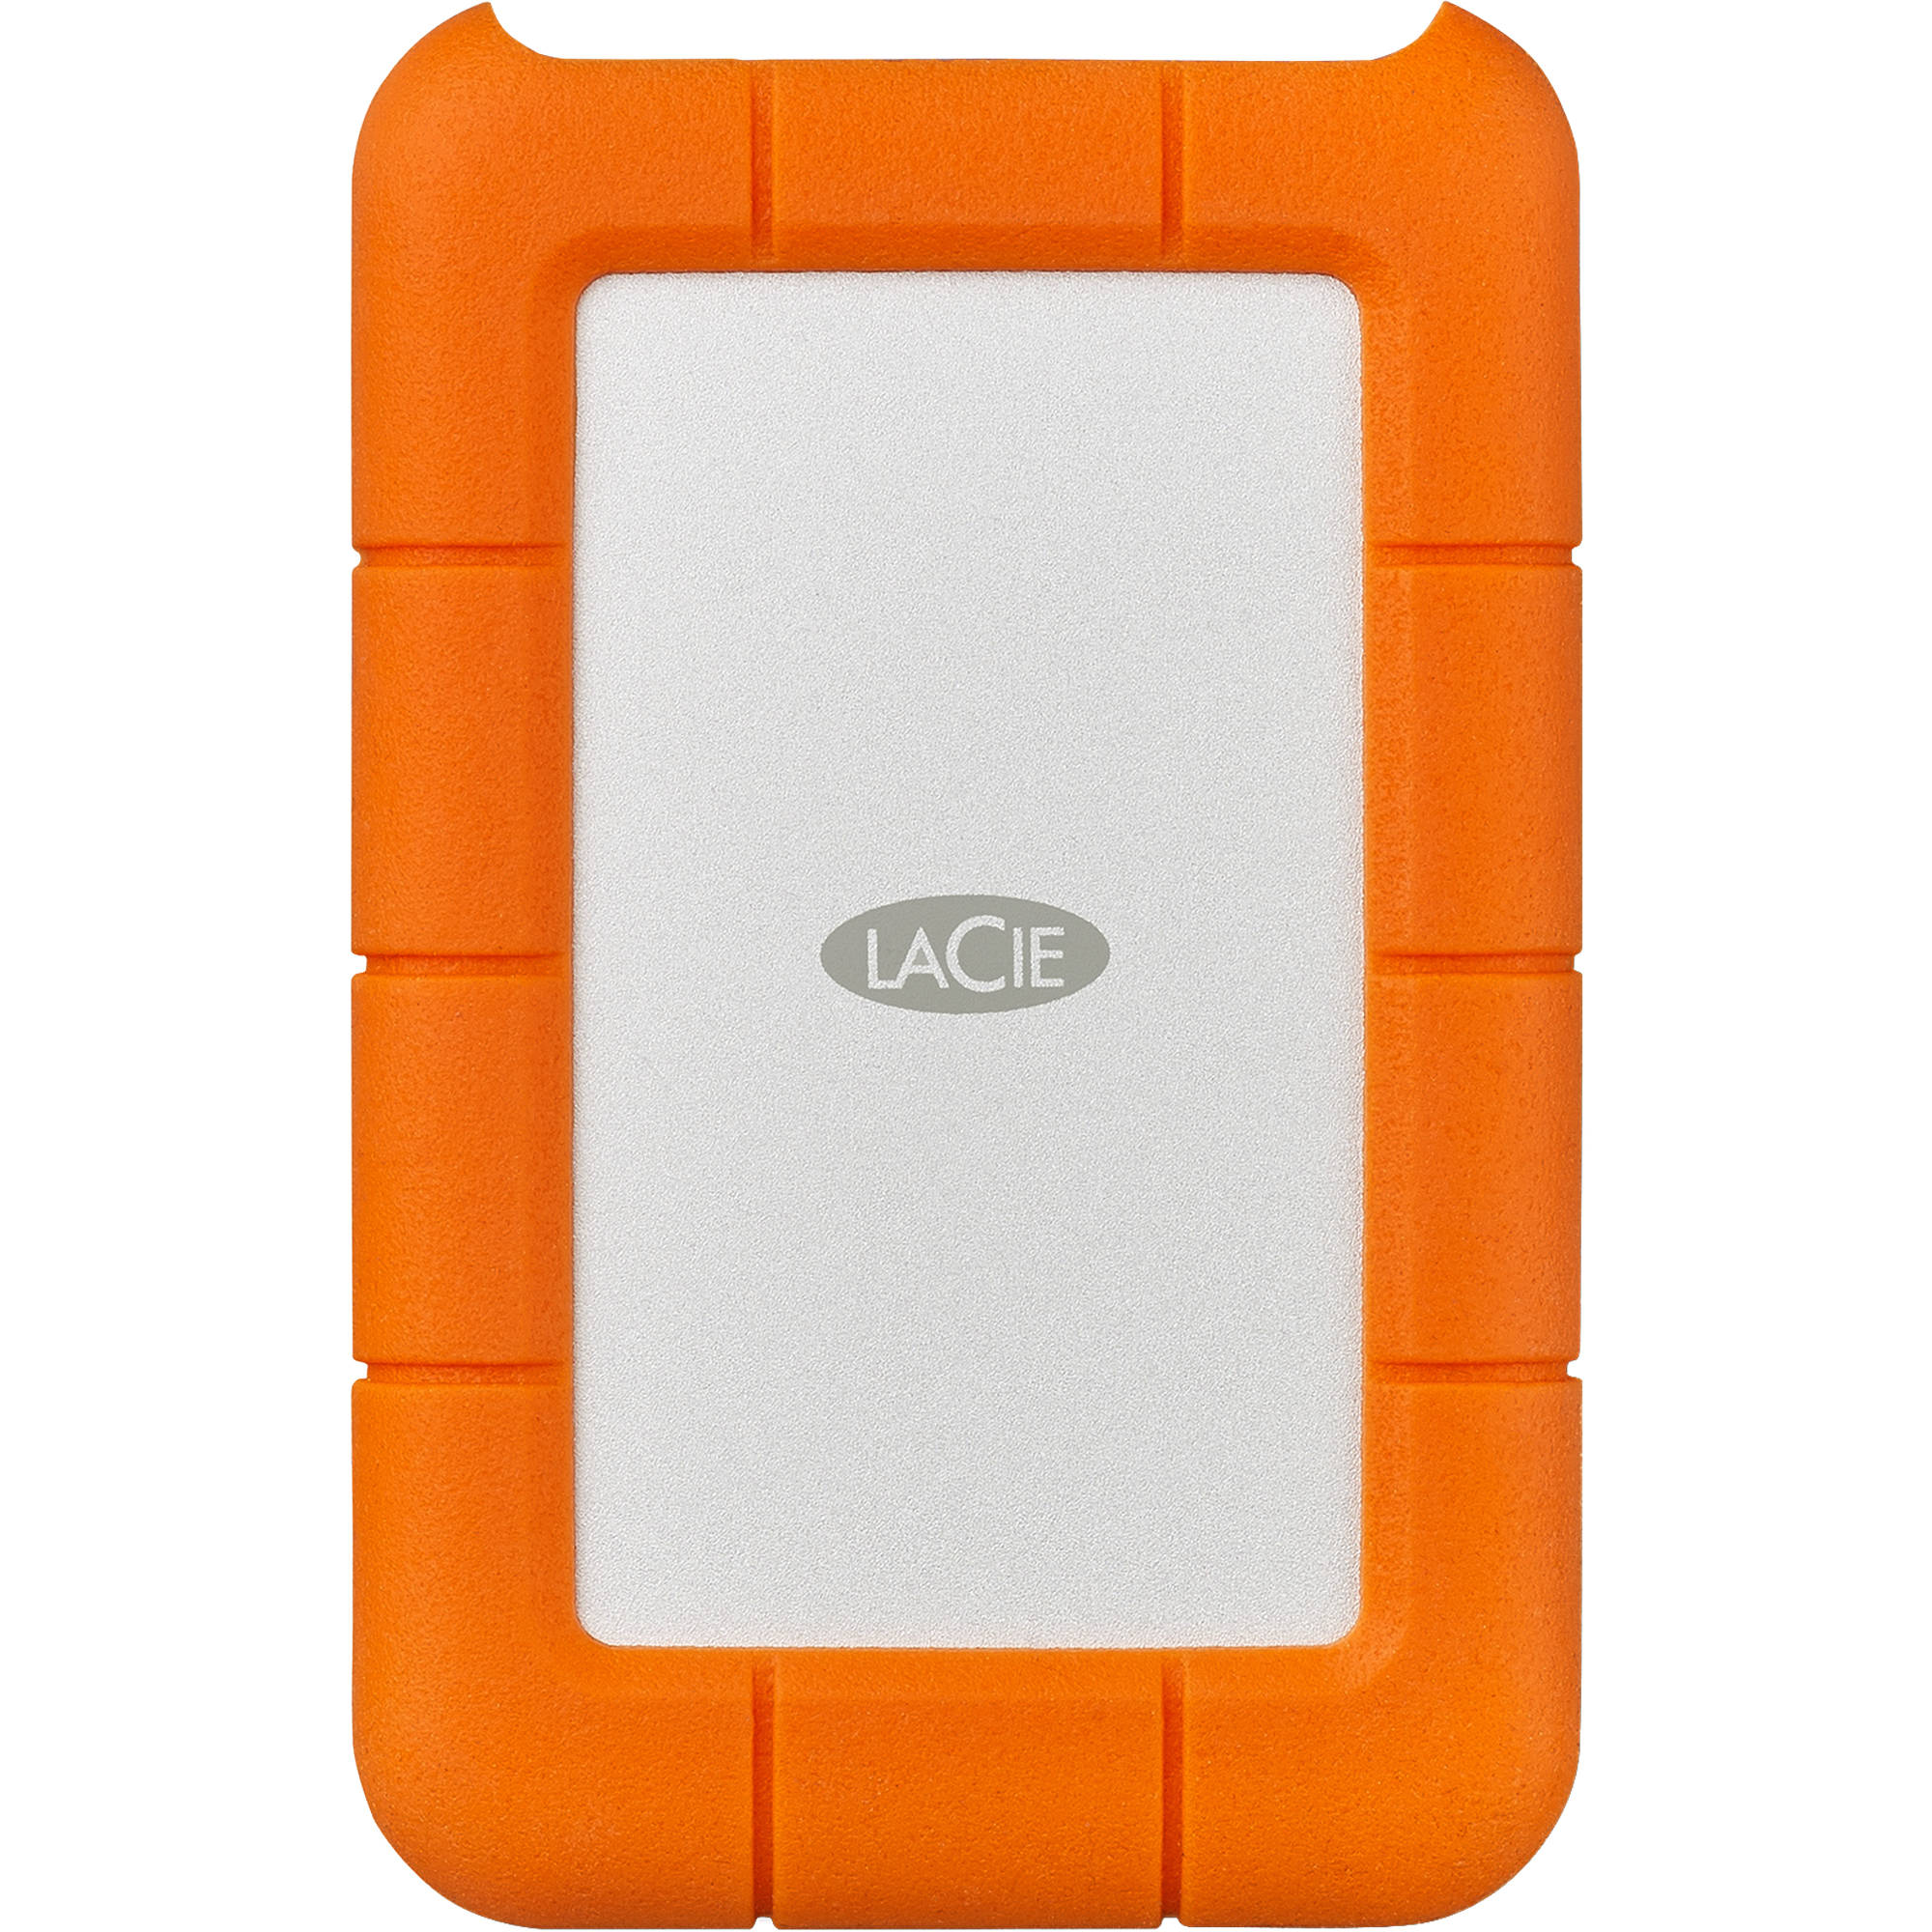 LaCie 2TB Rugged USB 3.0 Type-C External Hard Drive Digital Media LACIE